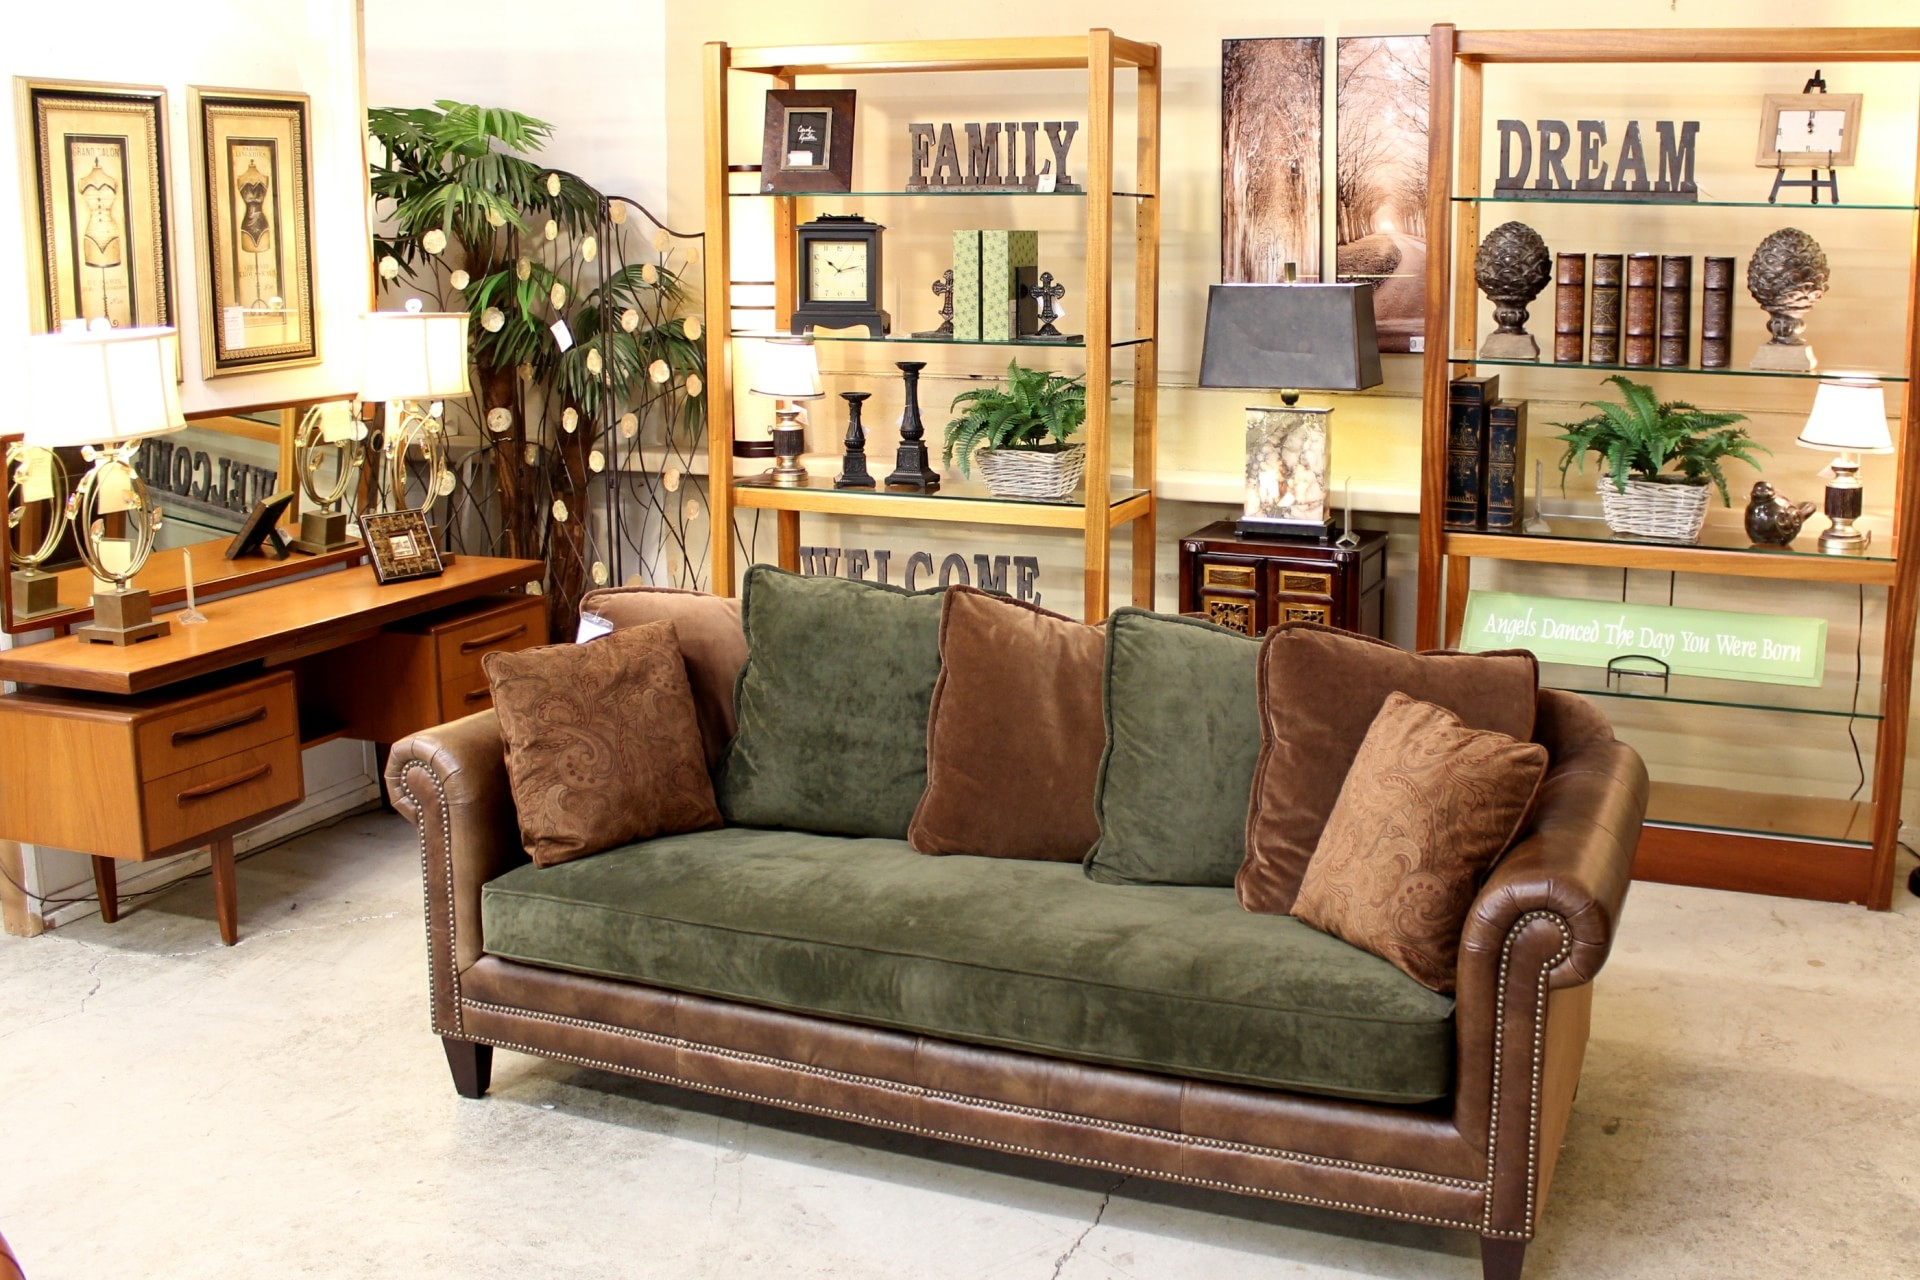 Upscale Consignment Furniture & Decor Gladstone OR YP